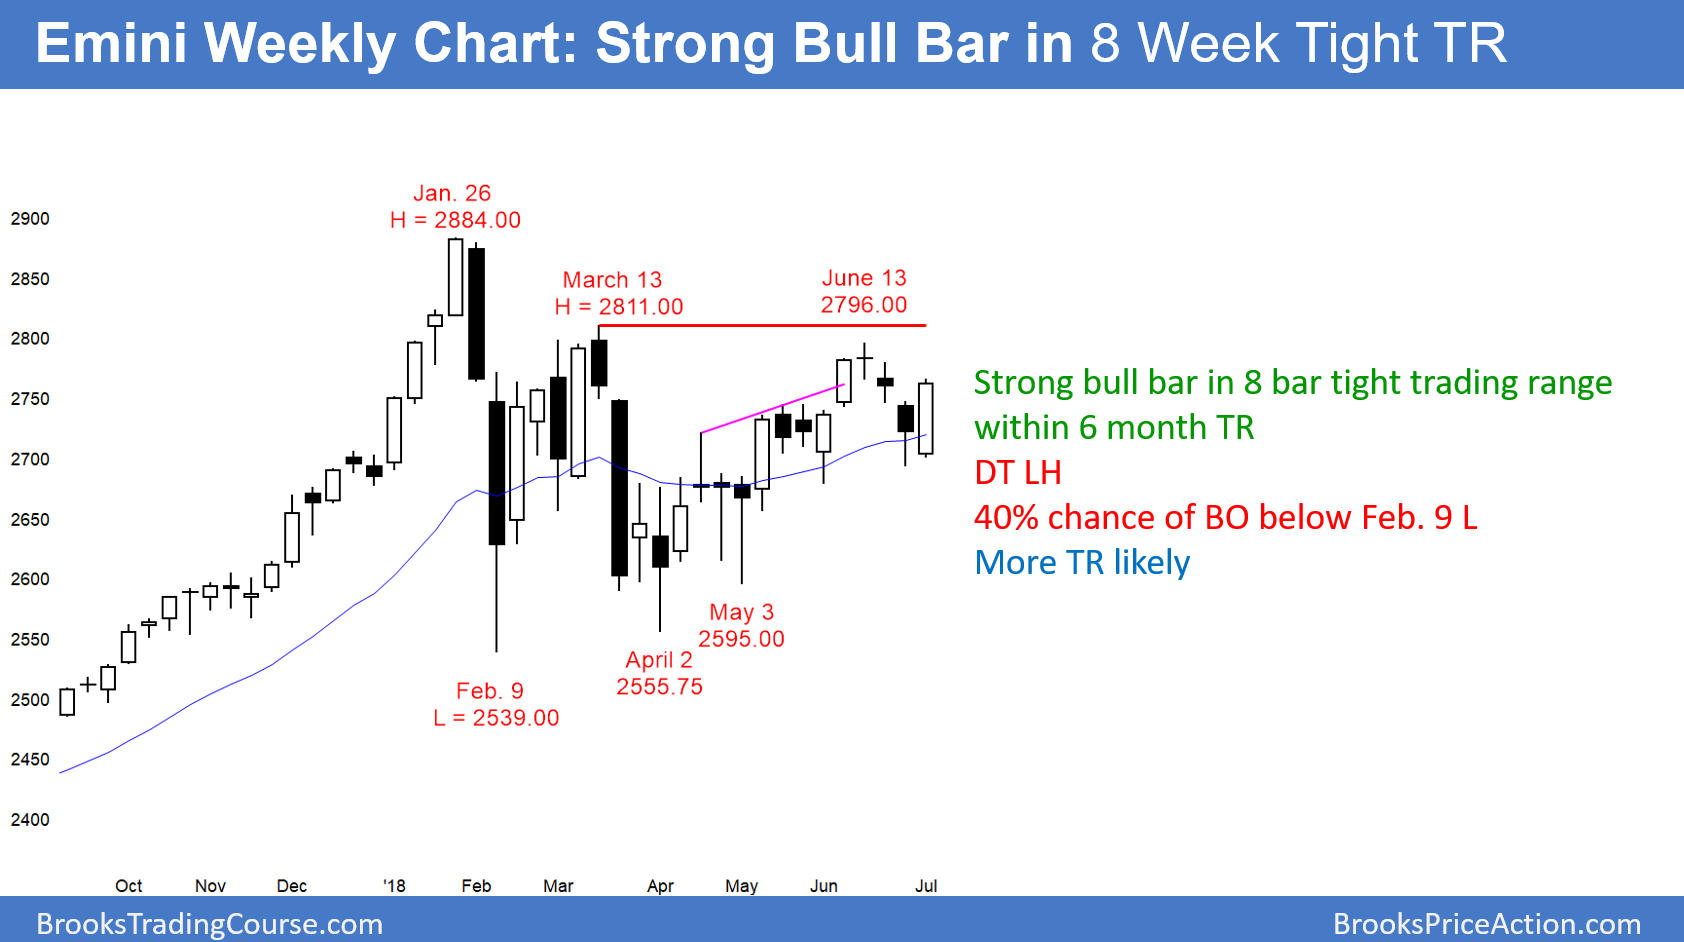 Emini Weekly Candlestick Chart Has Bull Trend